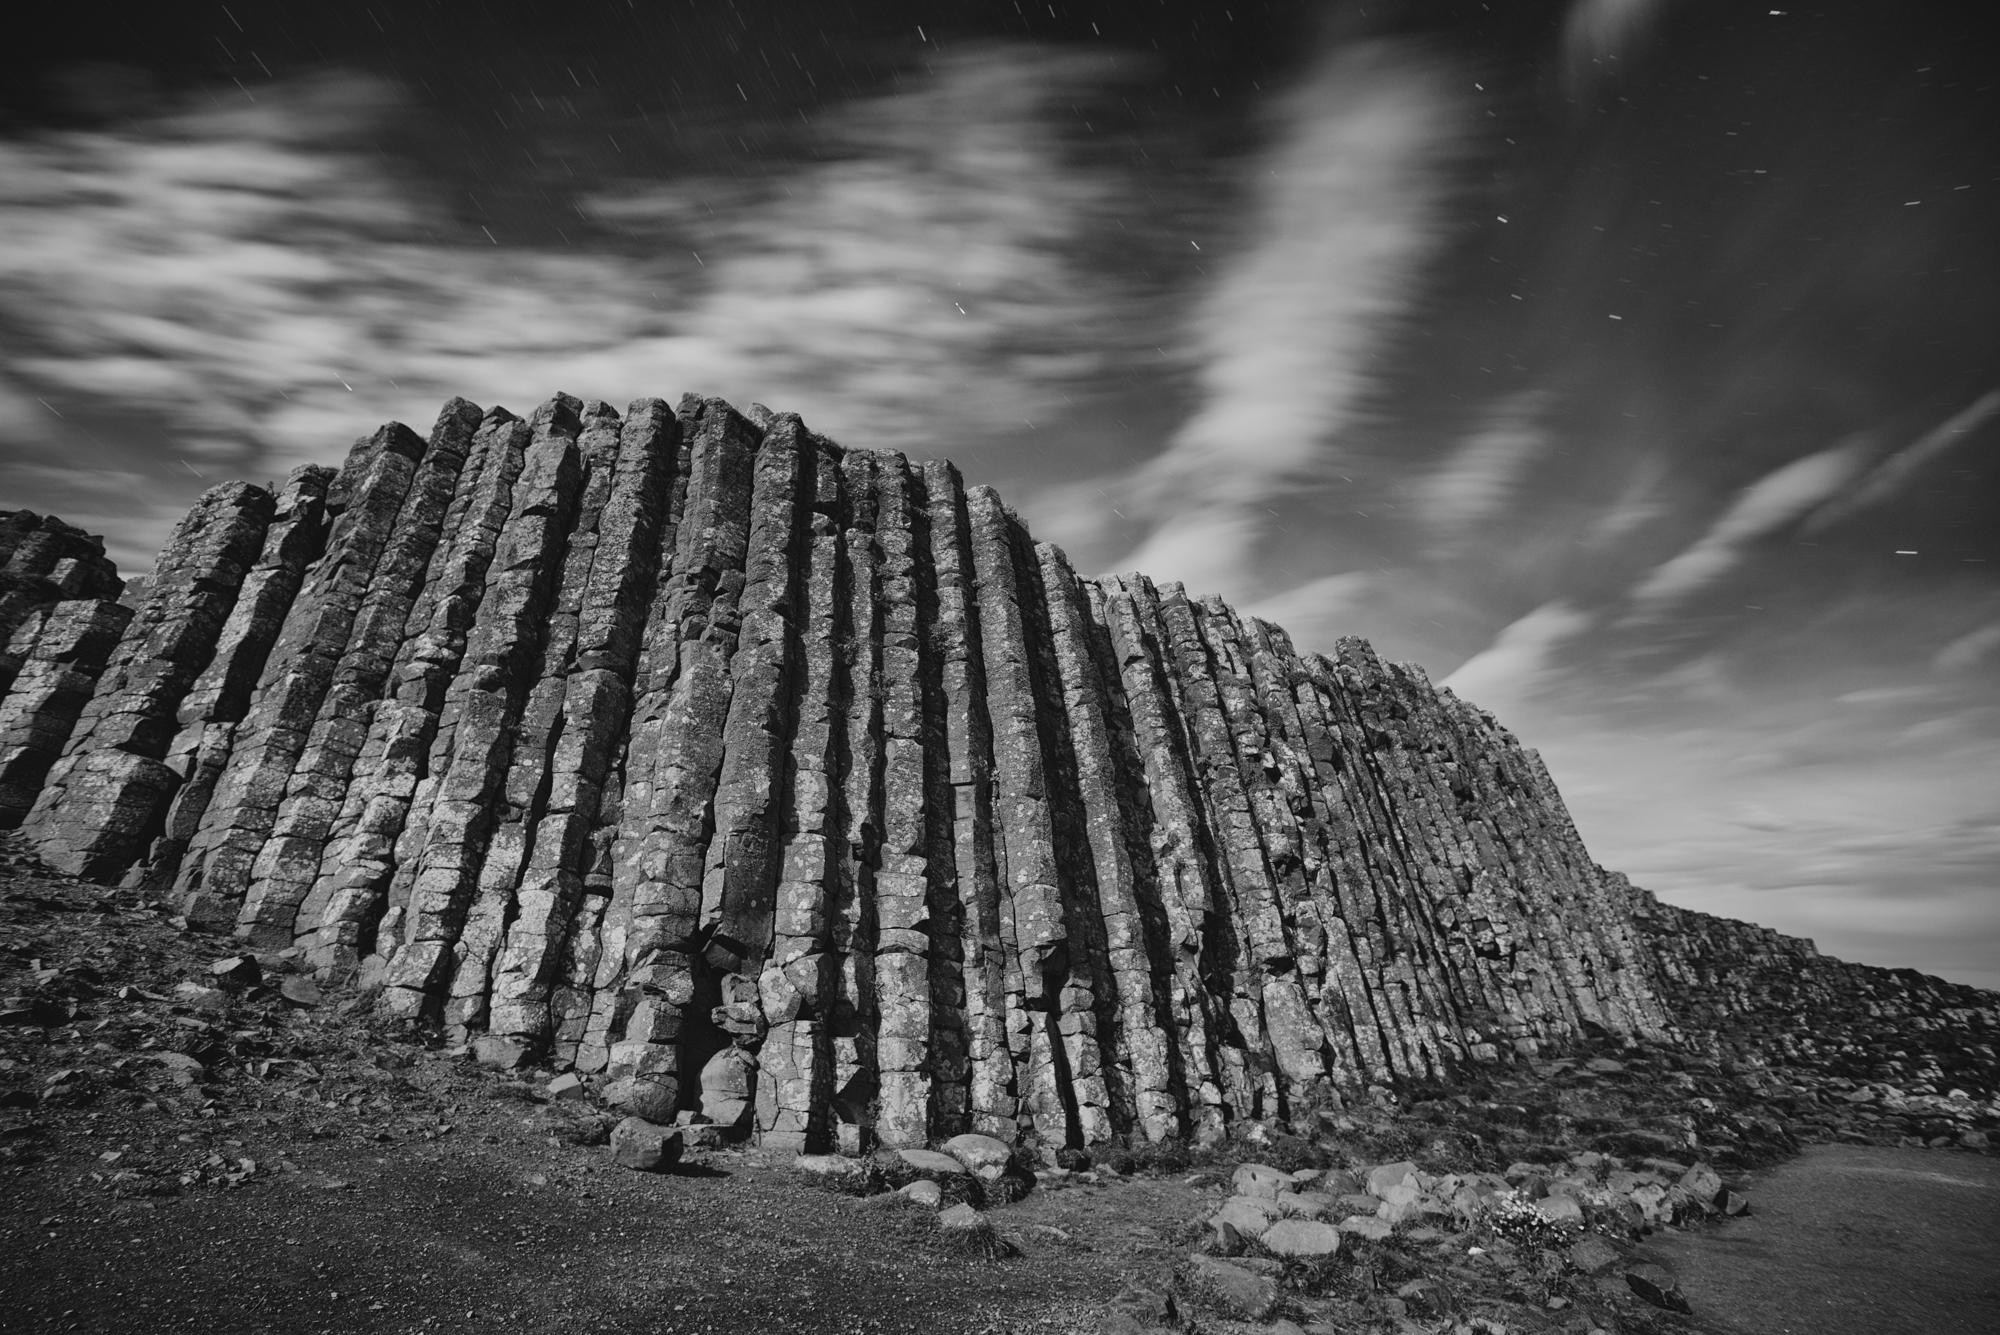 The unique basalt rock formation that comprise the Giants Causeway see from the side under strong moonlight.Prints available for purchase - contact  Matt@matthillart.com